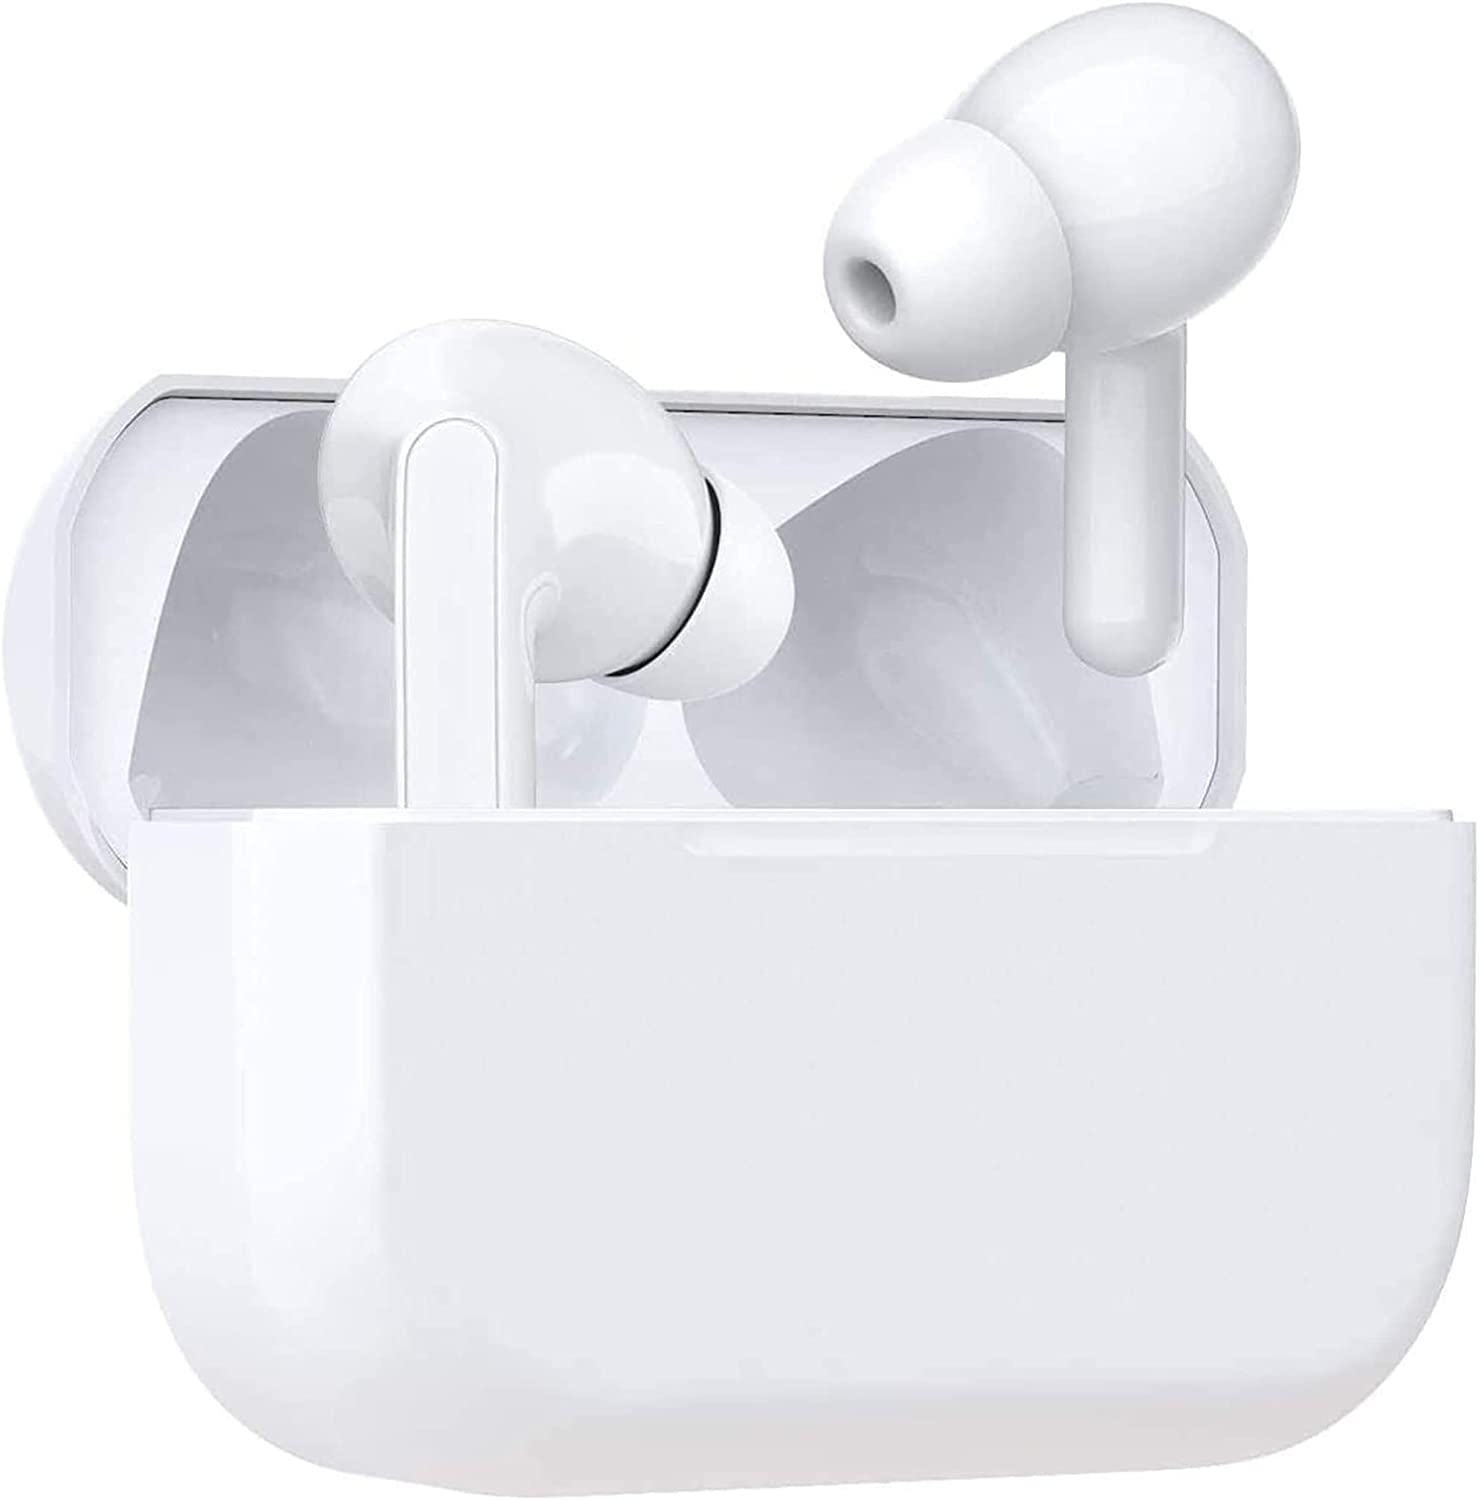 Wireless Earbuds Bluetooth Headphones with 24H Playtime Noise Canceling Stereo Earphones in-Ear Ear Buds Built in Mic Headsets IPX5 Waterproof Headphones foriPhone/Android/Samsung(White)